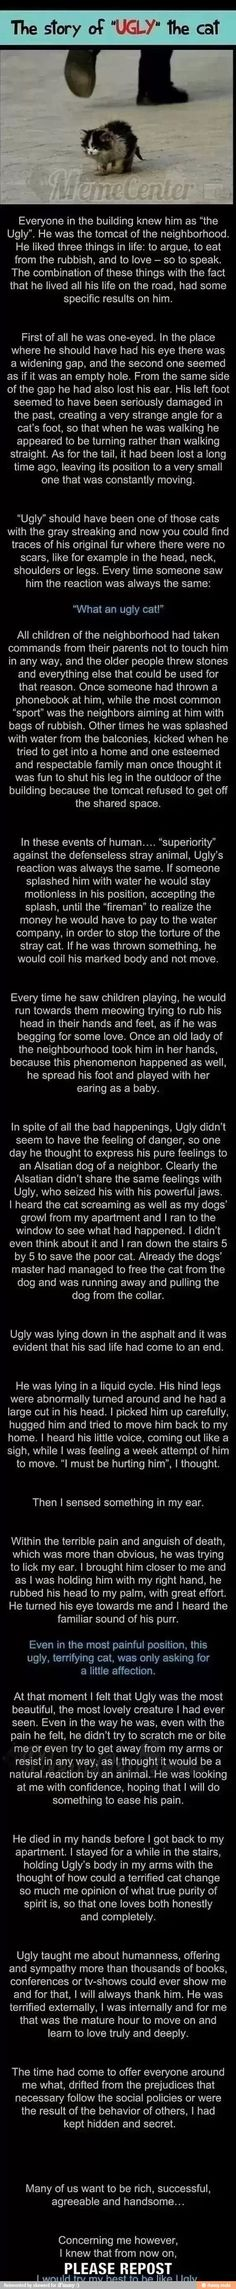 Ugly the cat, the most heartfelt thing in the world. this is the first time a post has made me cry. Seriously I cried